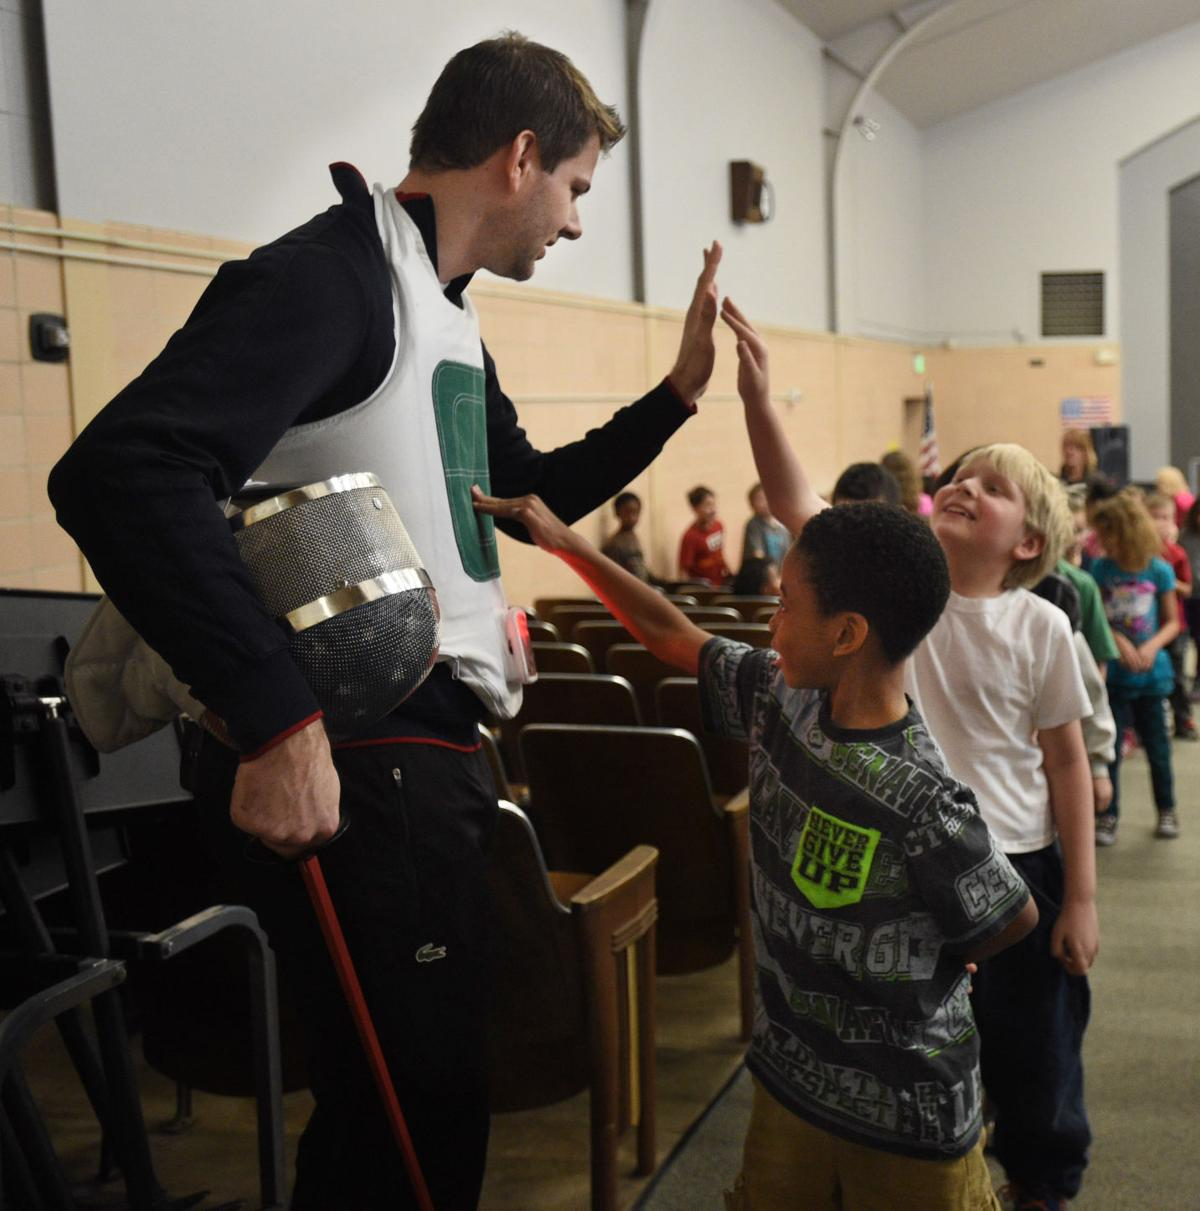 Olympians help spread fencing exposure to area elementary teachers, students